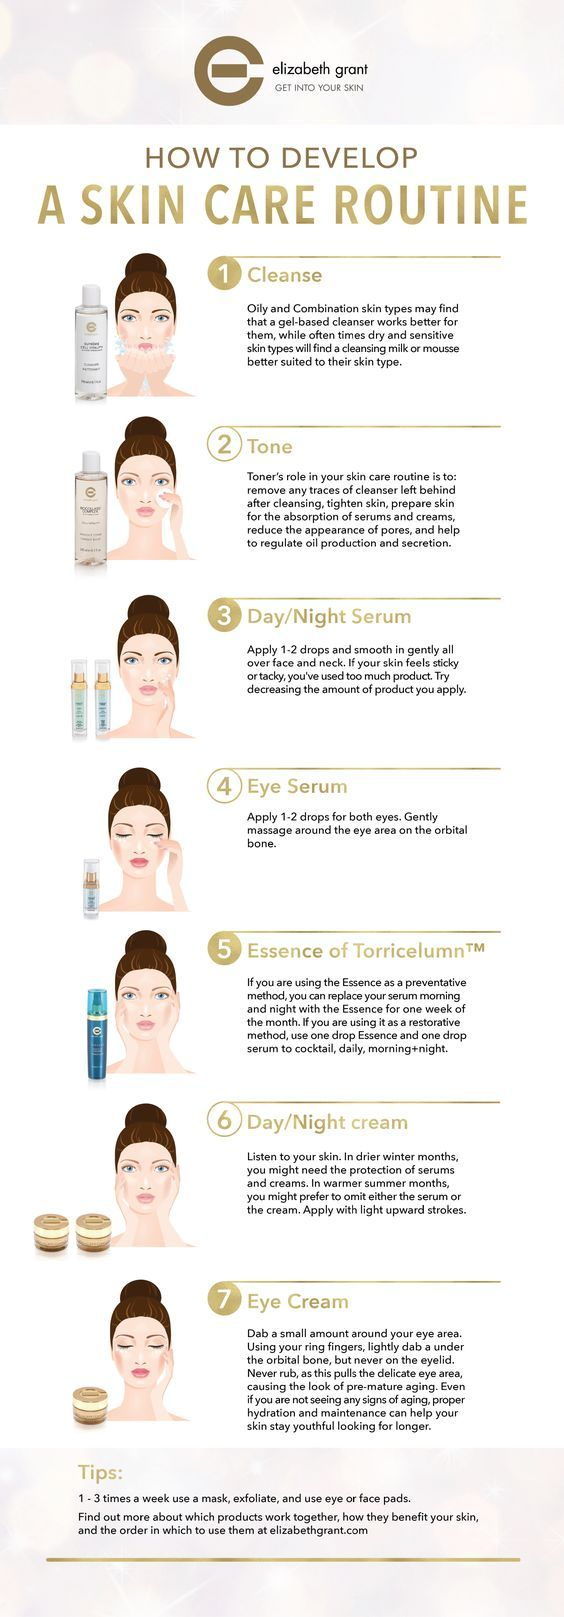 Do You Know How To Take Care Of Your Skin Here Is How You Can Develop A Skin Care Routine To Get The Most O Skin Care Order Proper Skin Care